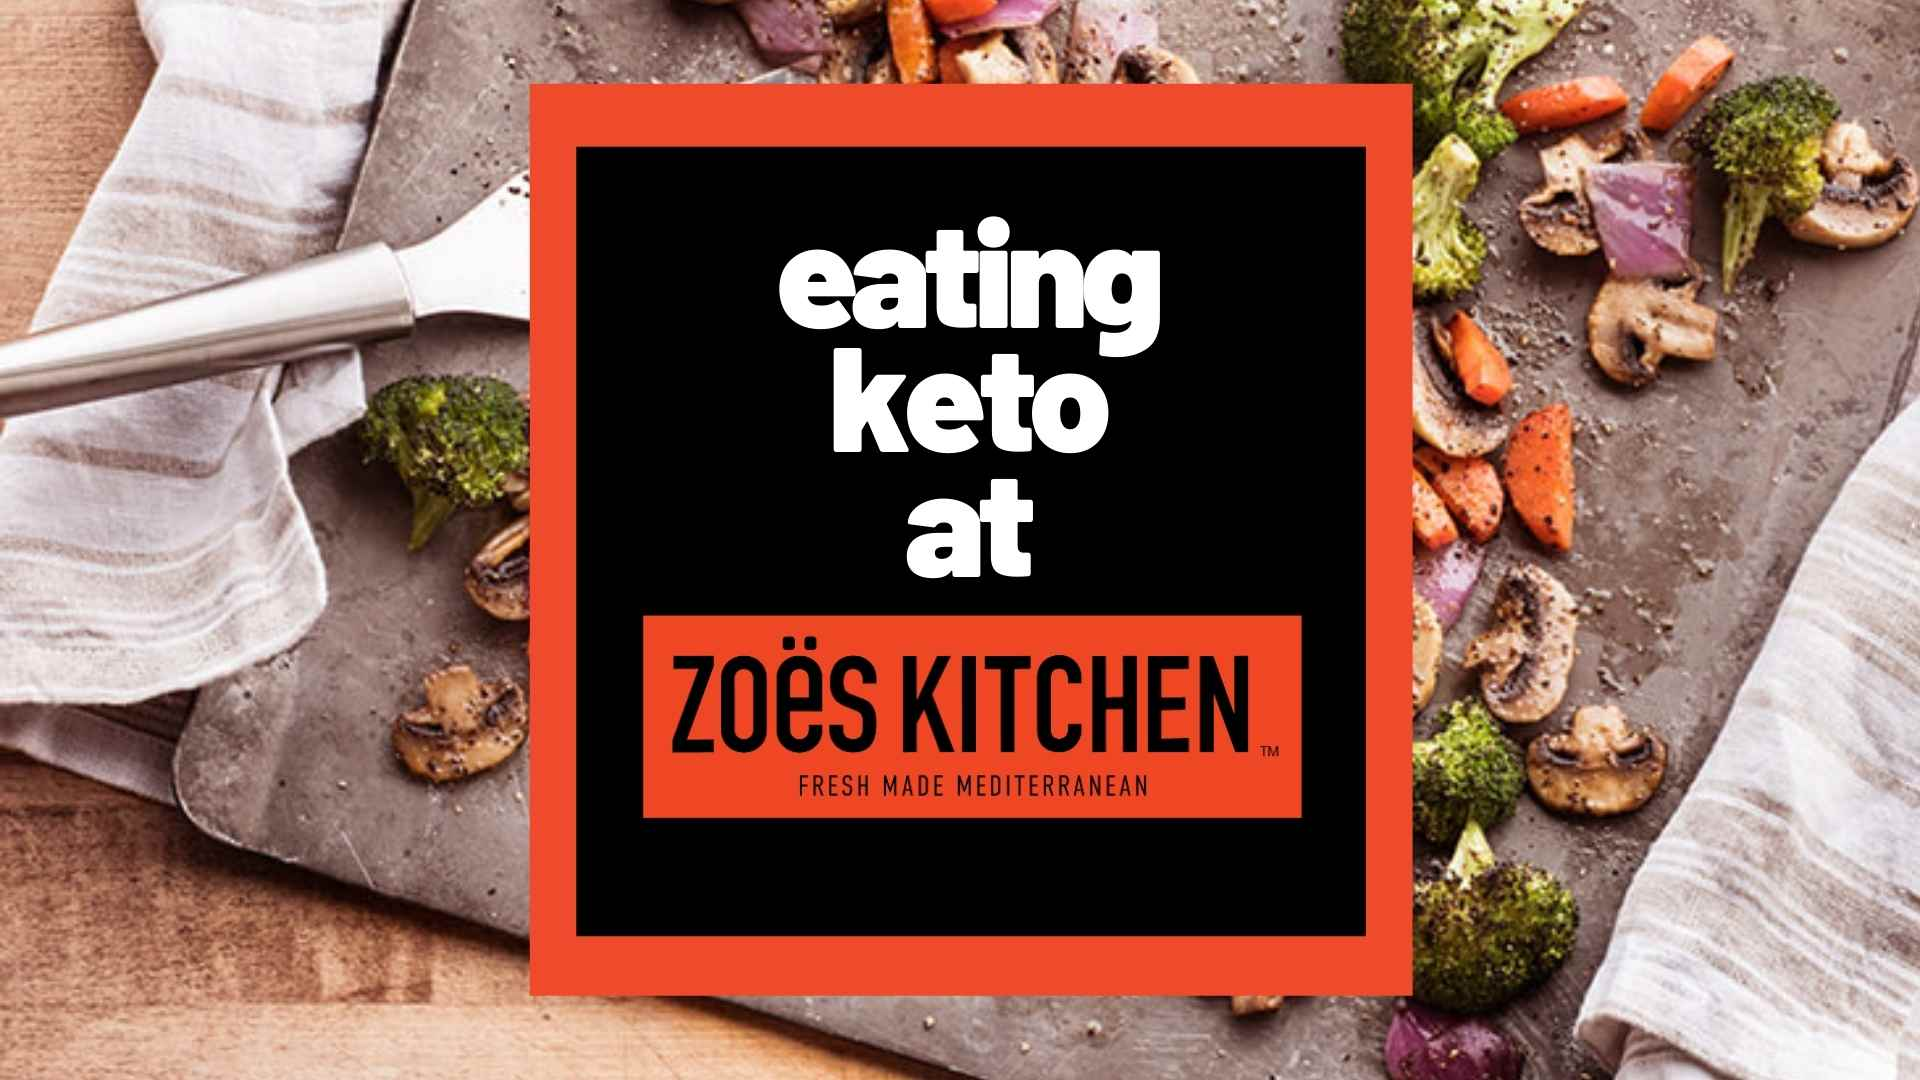 zoes-kitchen-keto-menu